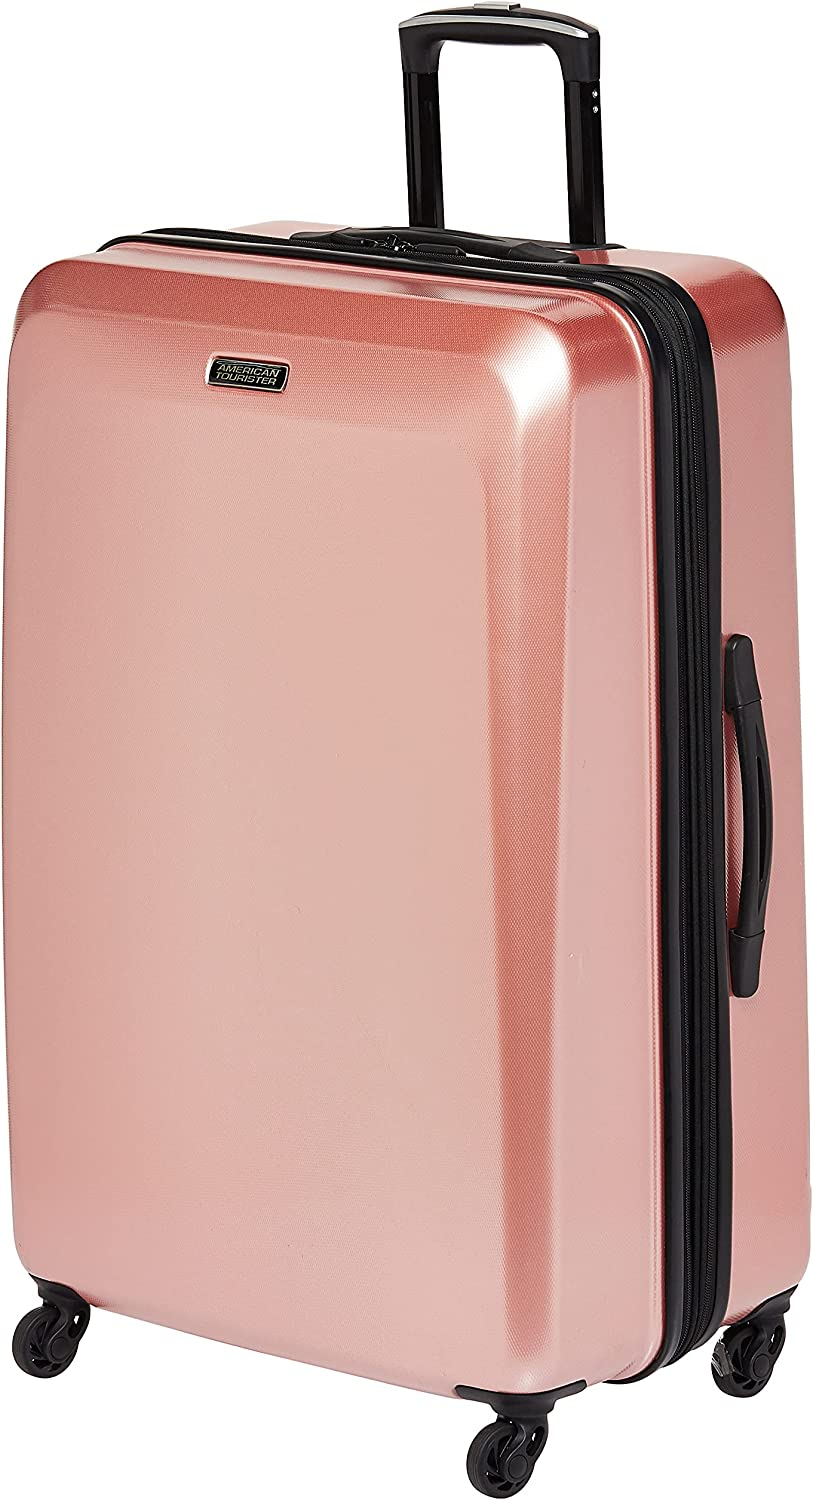 American Tourister Moonlight Hardside Sp Industry No. 1 Expandable lowest price with Luggage